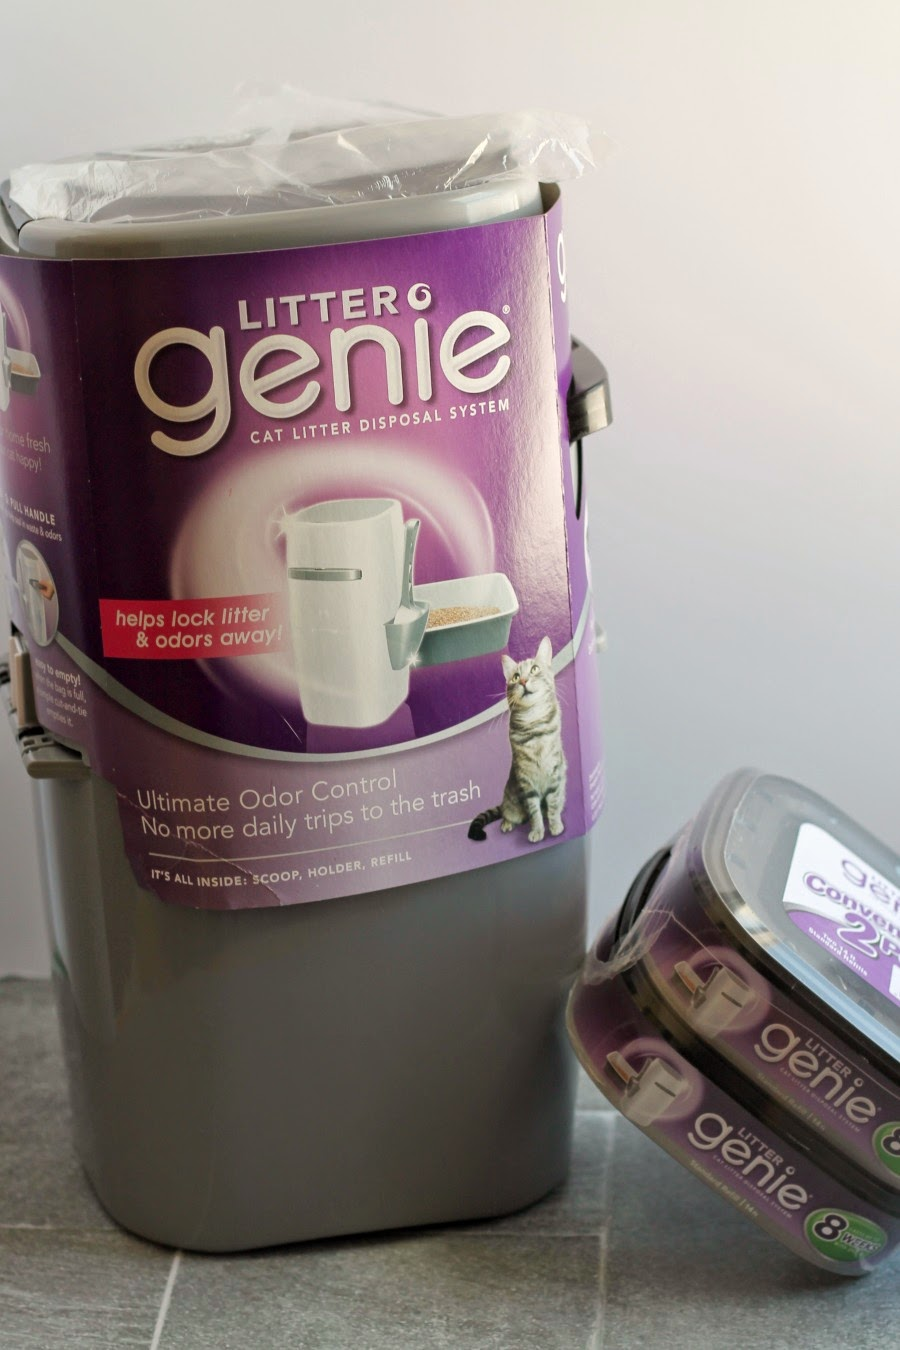 Granting Kitty Wishes with the Litter Genie- plus a special offer from Target on your Litter Genie purchase! #CatParents #Pmedia #ad